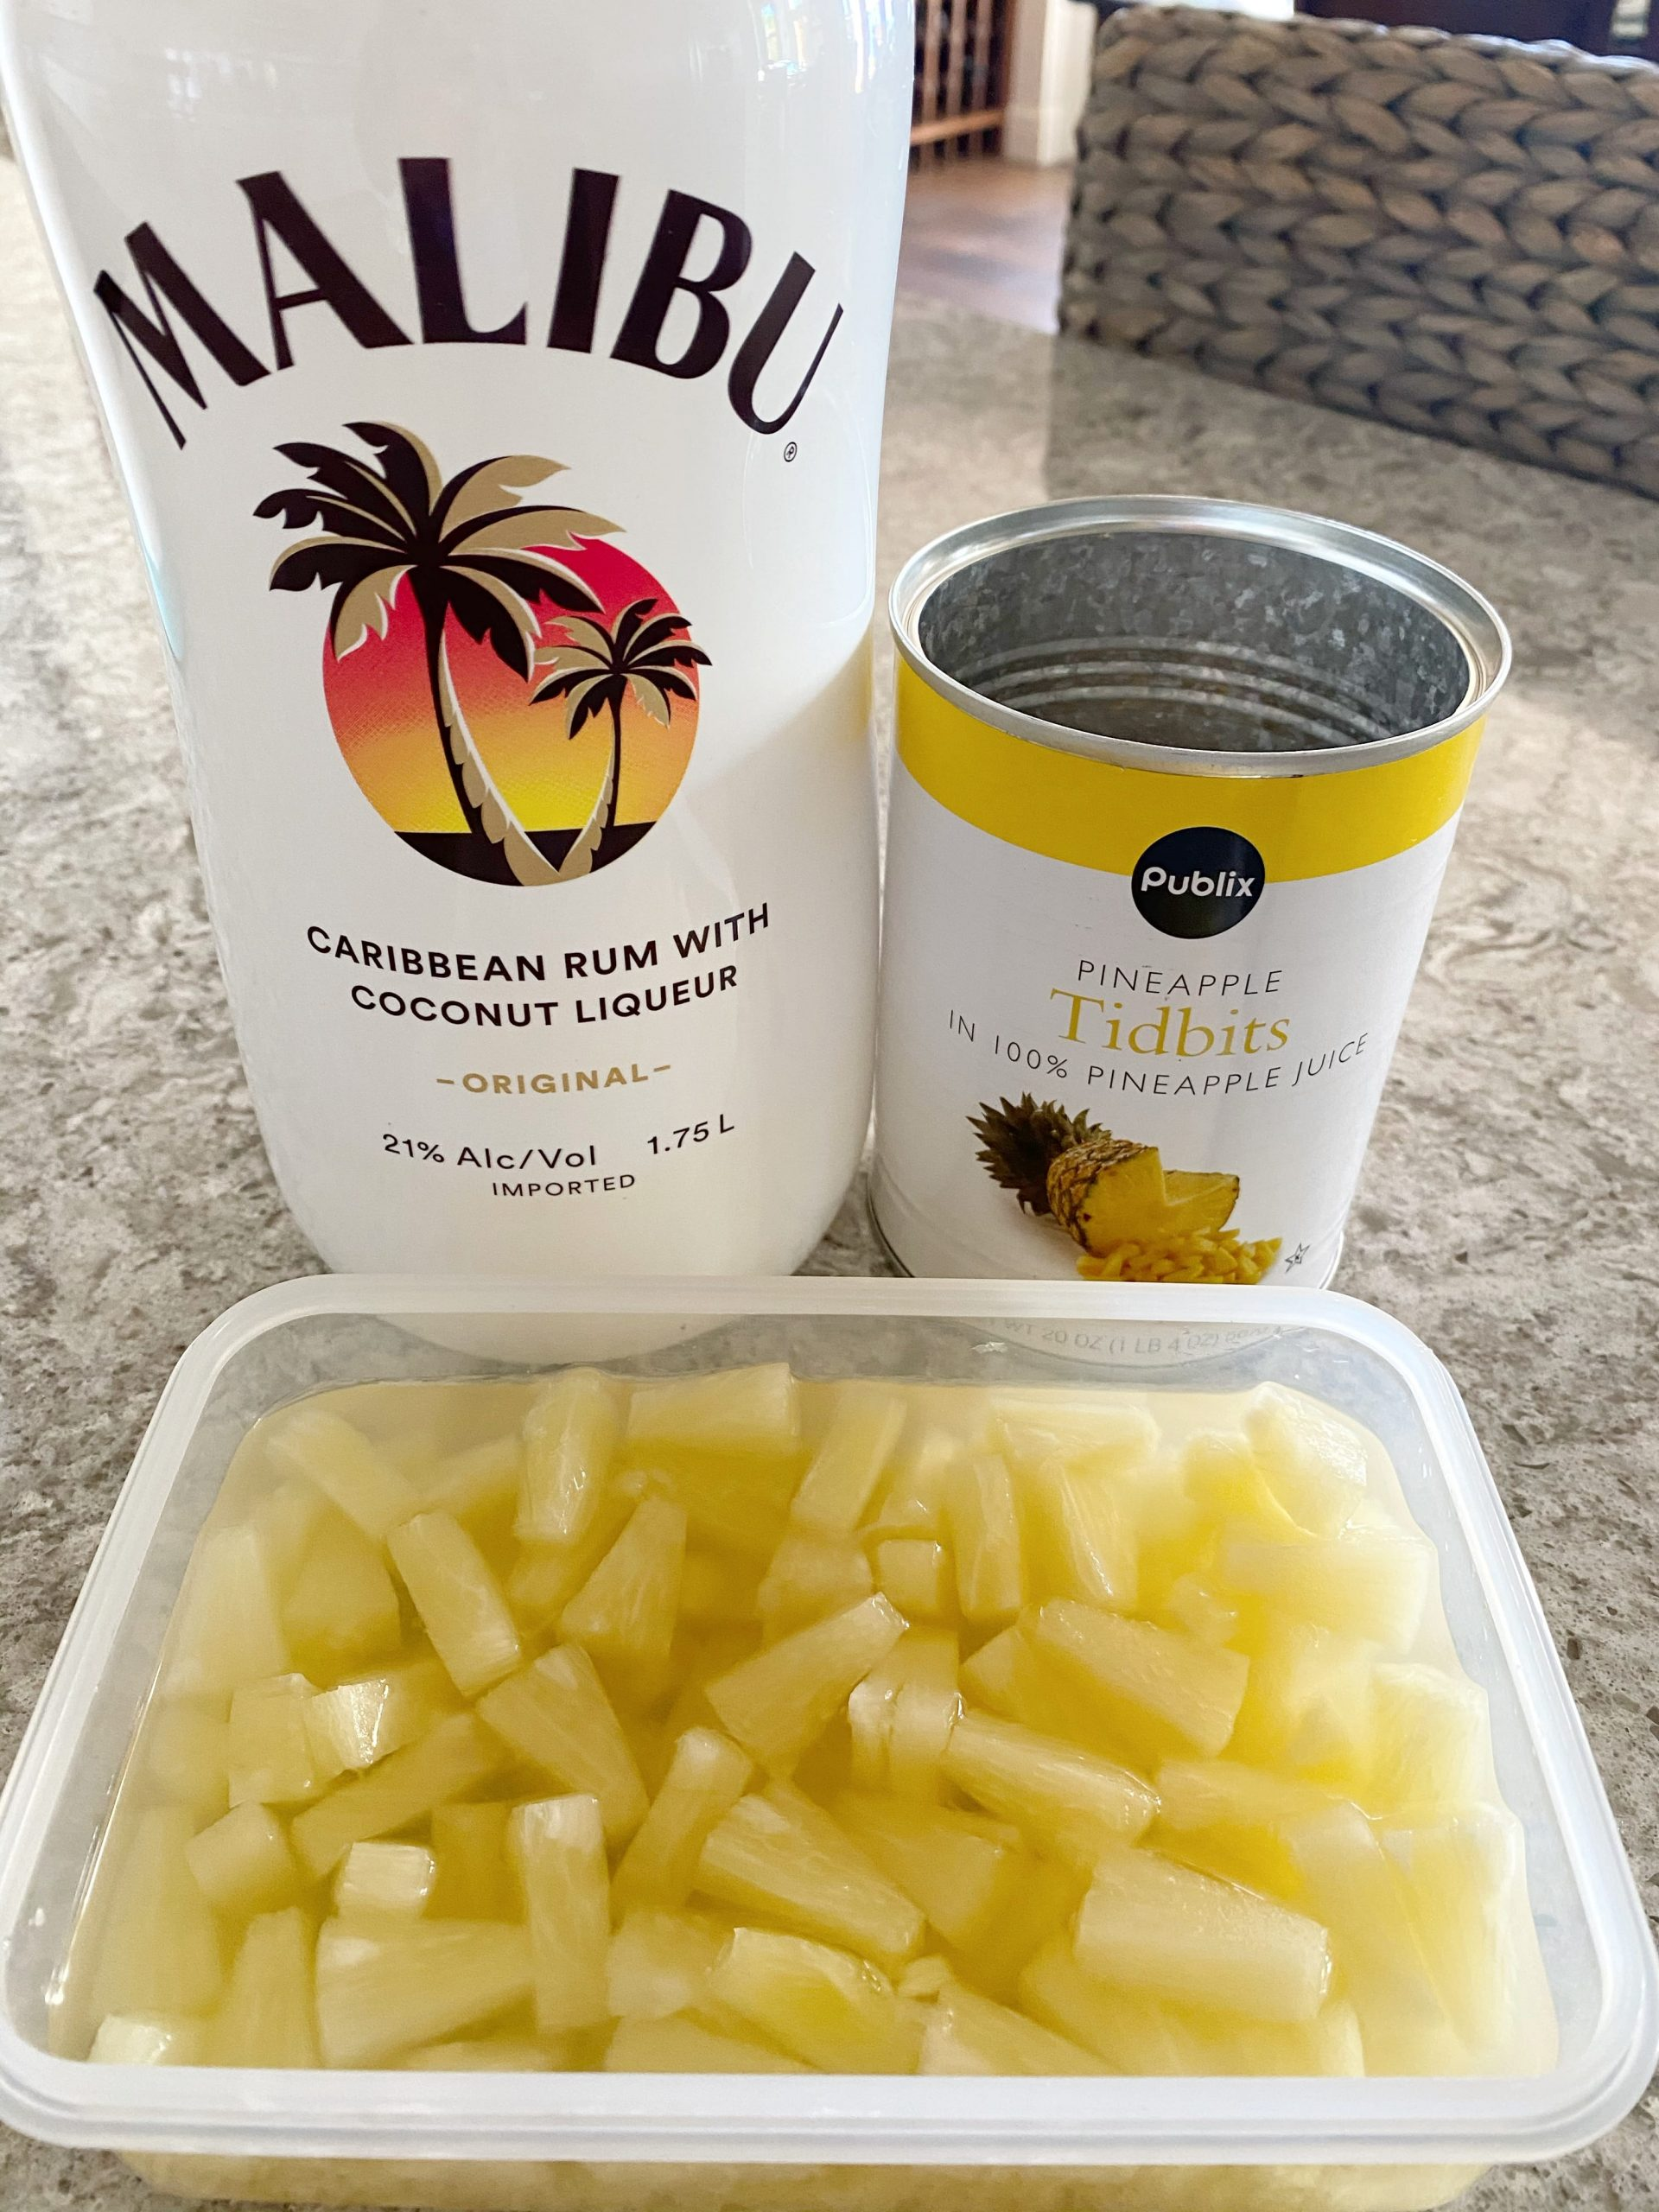 pineapple soaking in Malibu rum